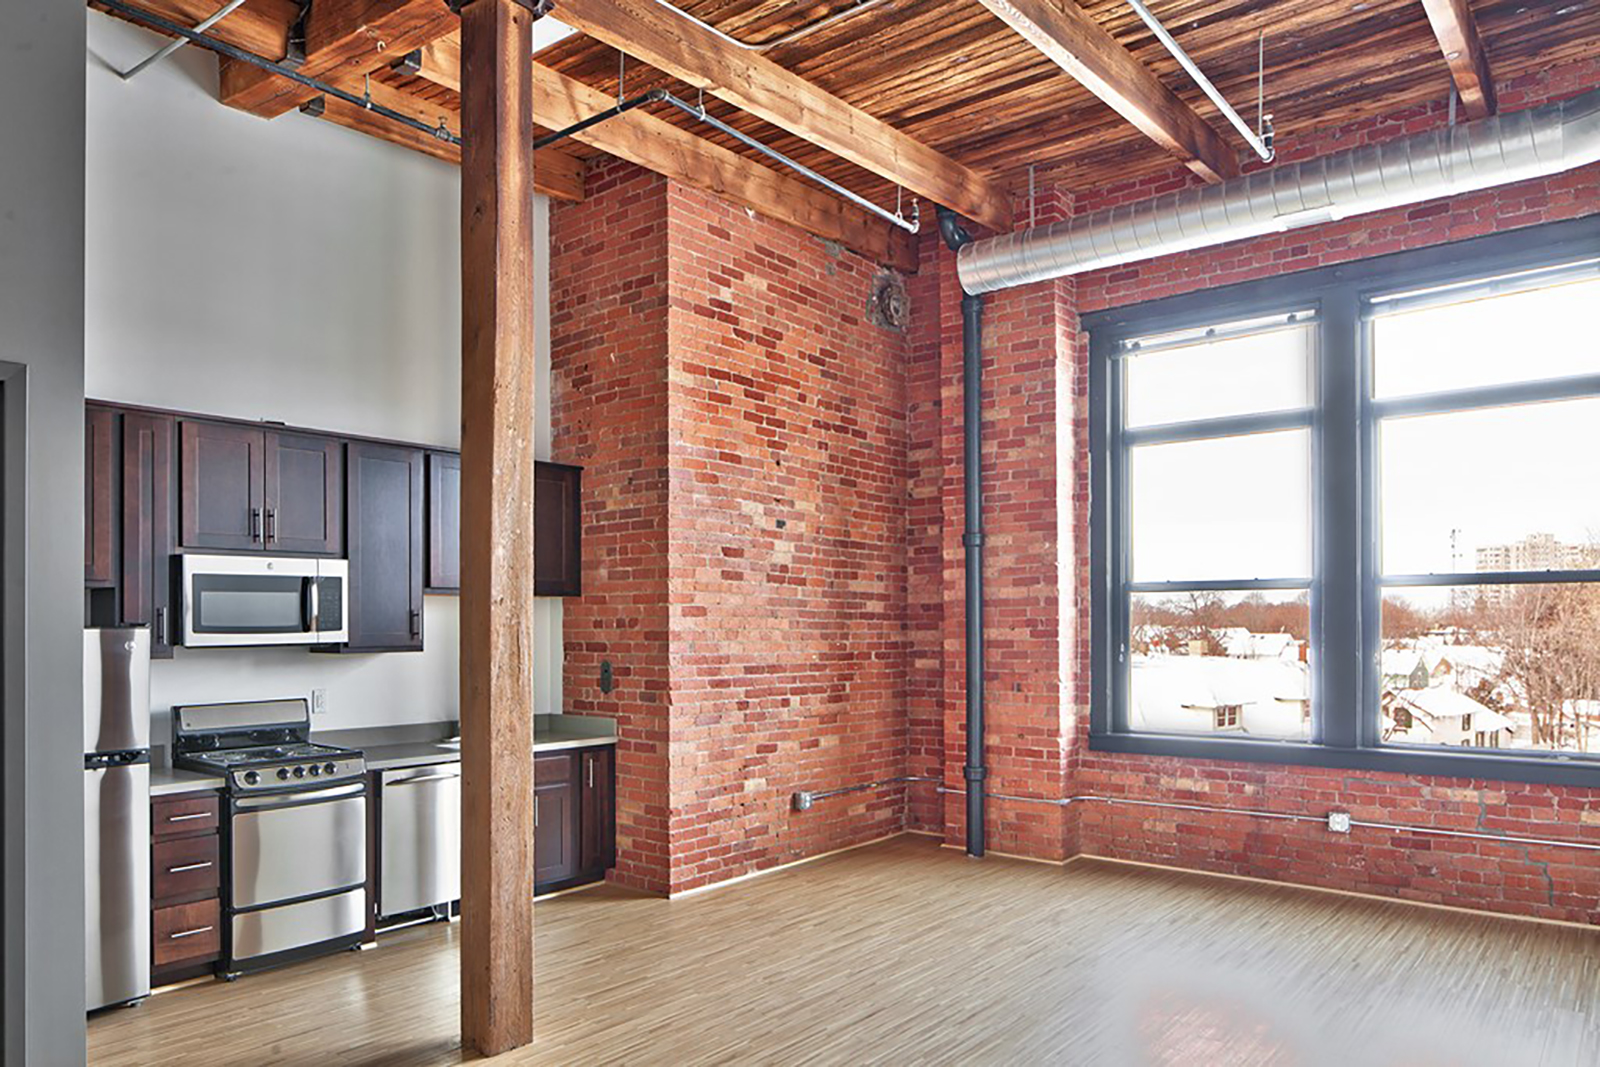 Rochester Ny Lofts: Real Estate Development